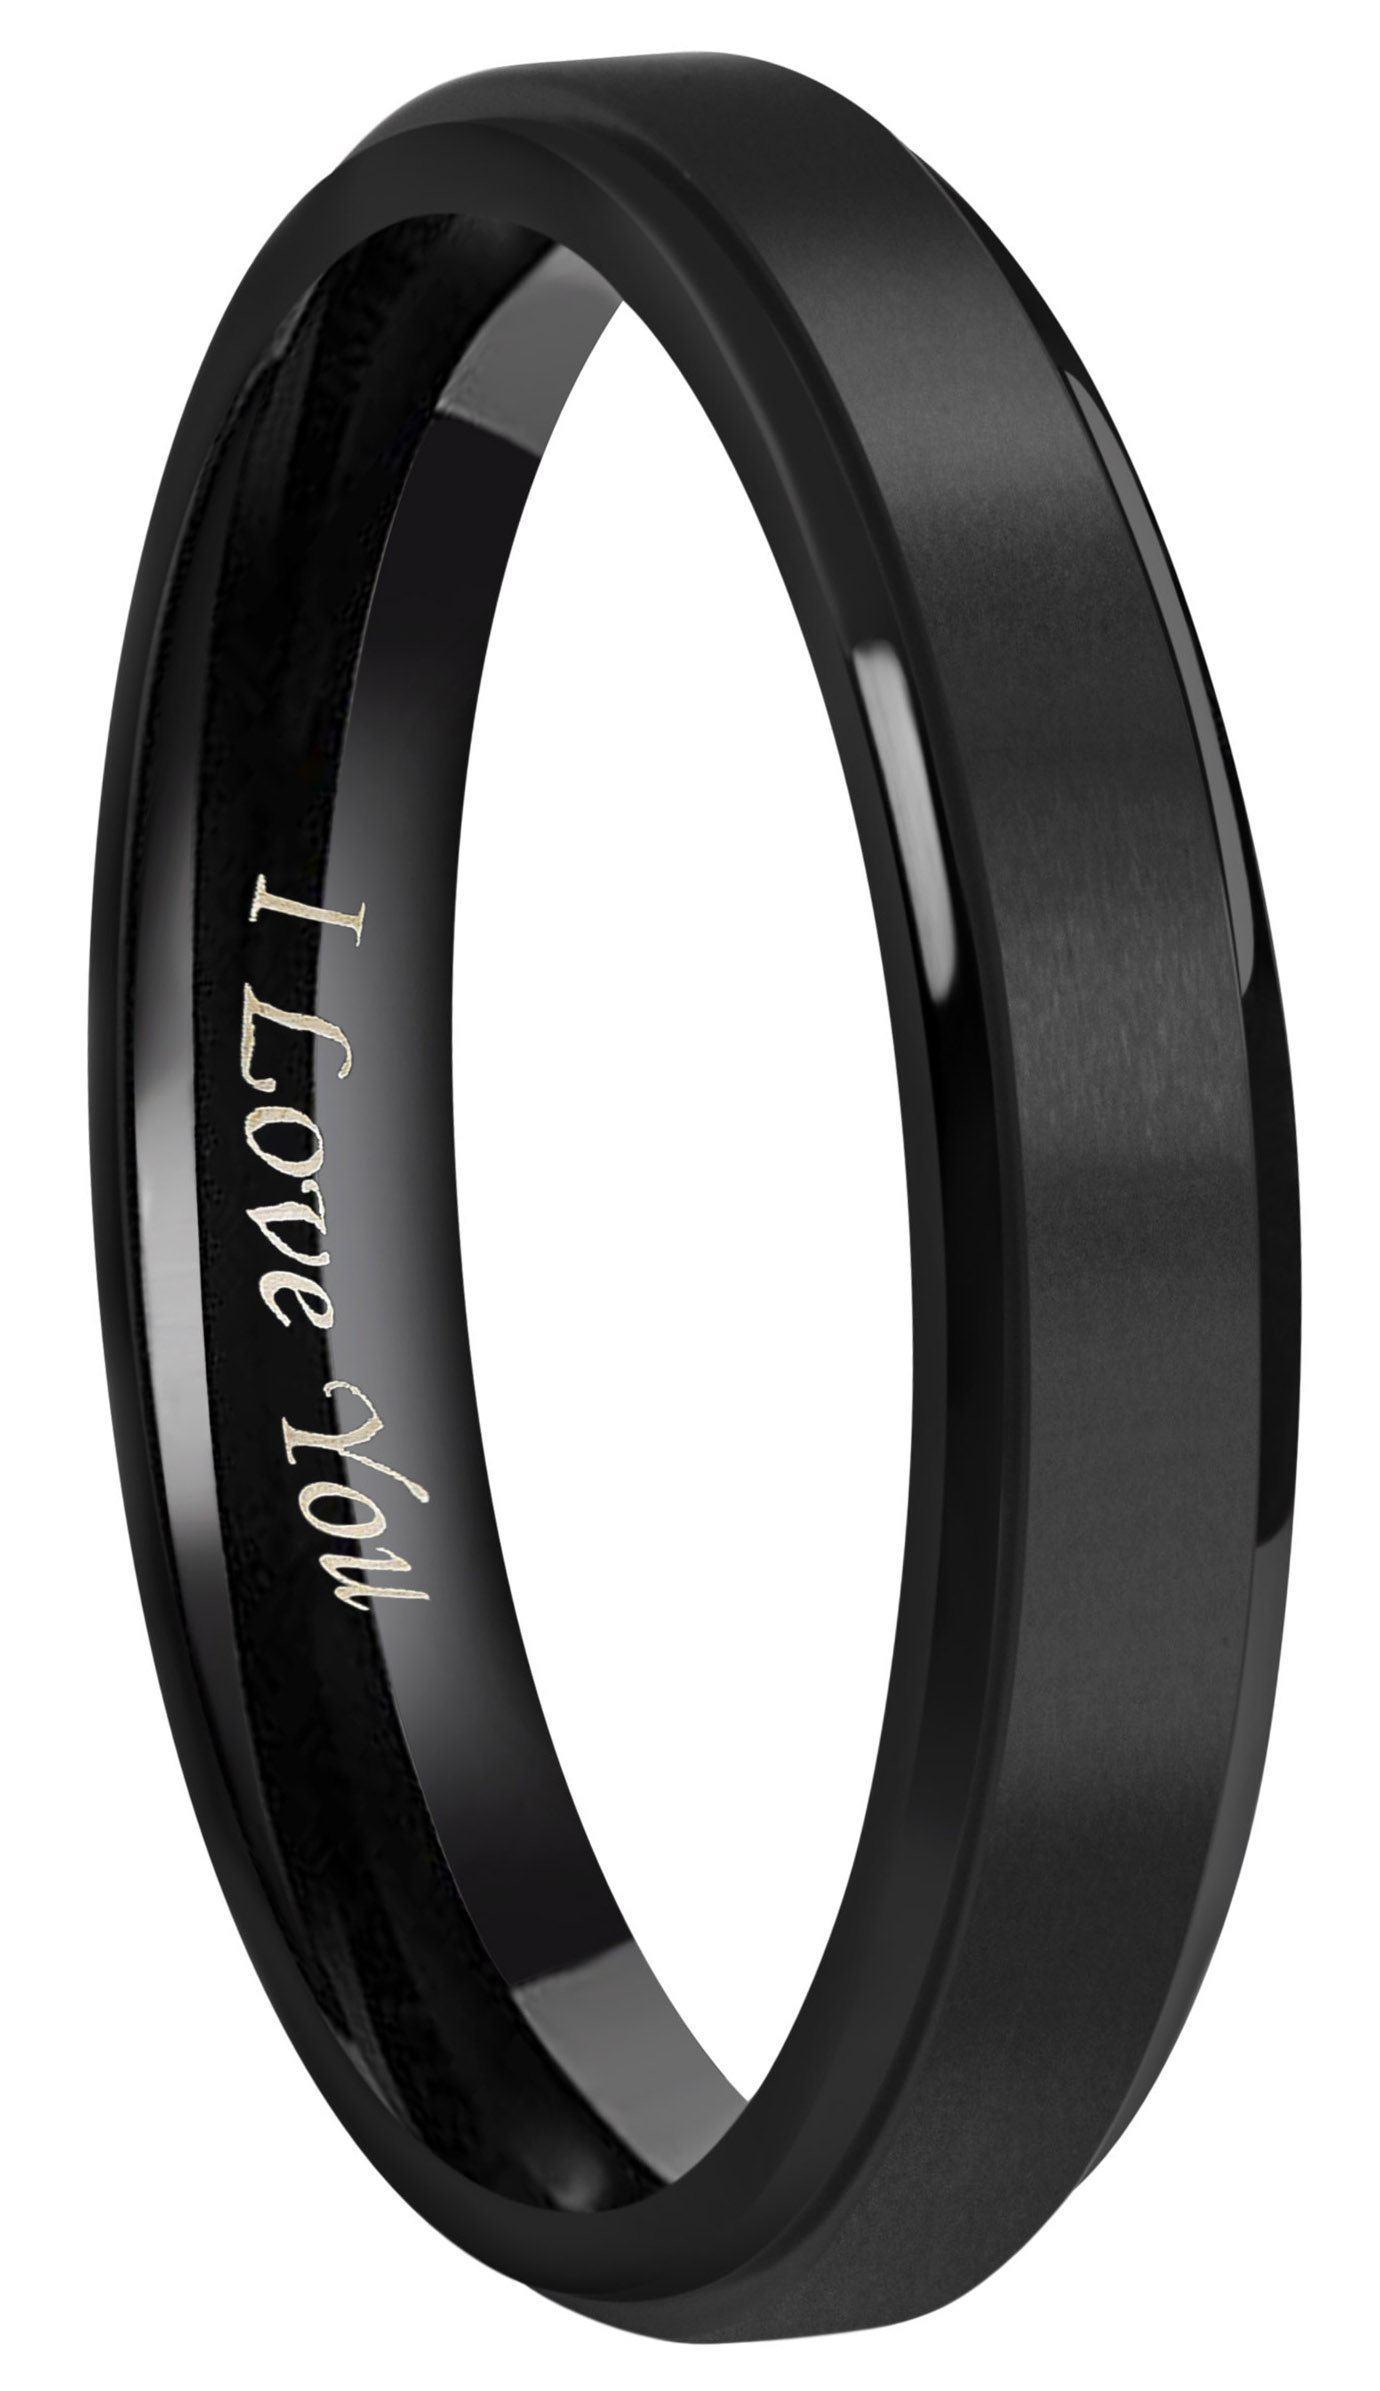 4mm 6mm 8mm Black Titanium Wedding Couple Bands Rings Men Women Matte Center Step Down Edges Engraved ''I Love You'' Comfort Fit Size 4 To 16 (4mm,5)